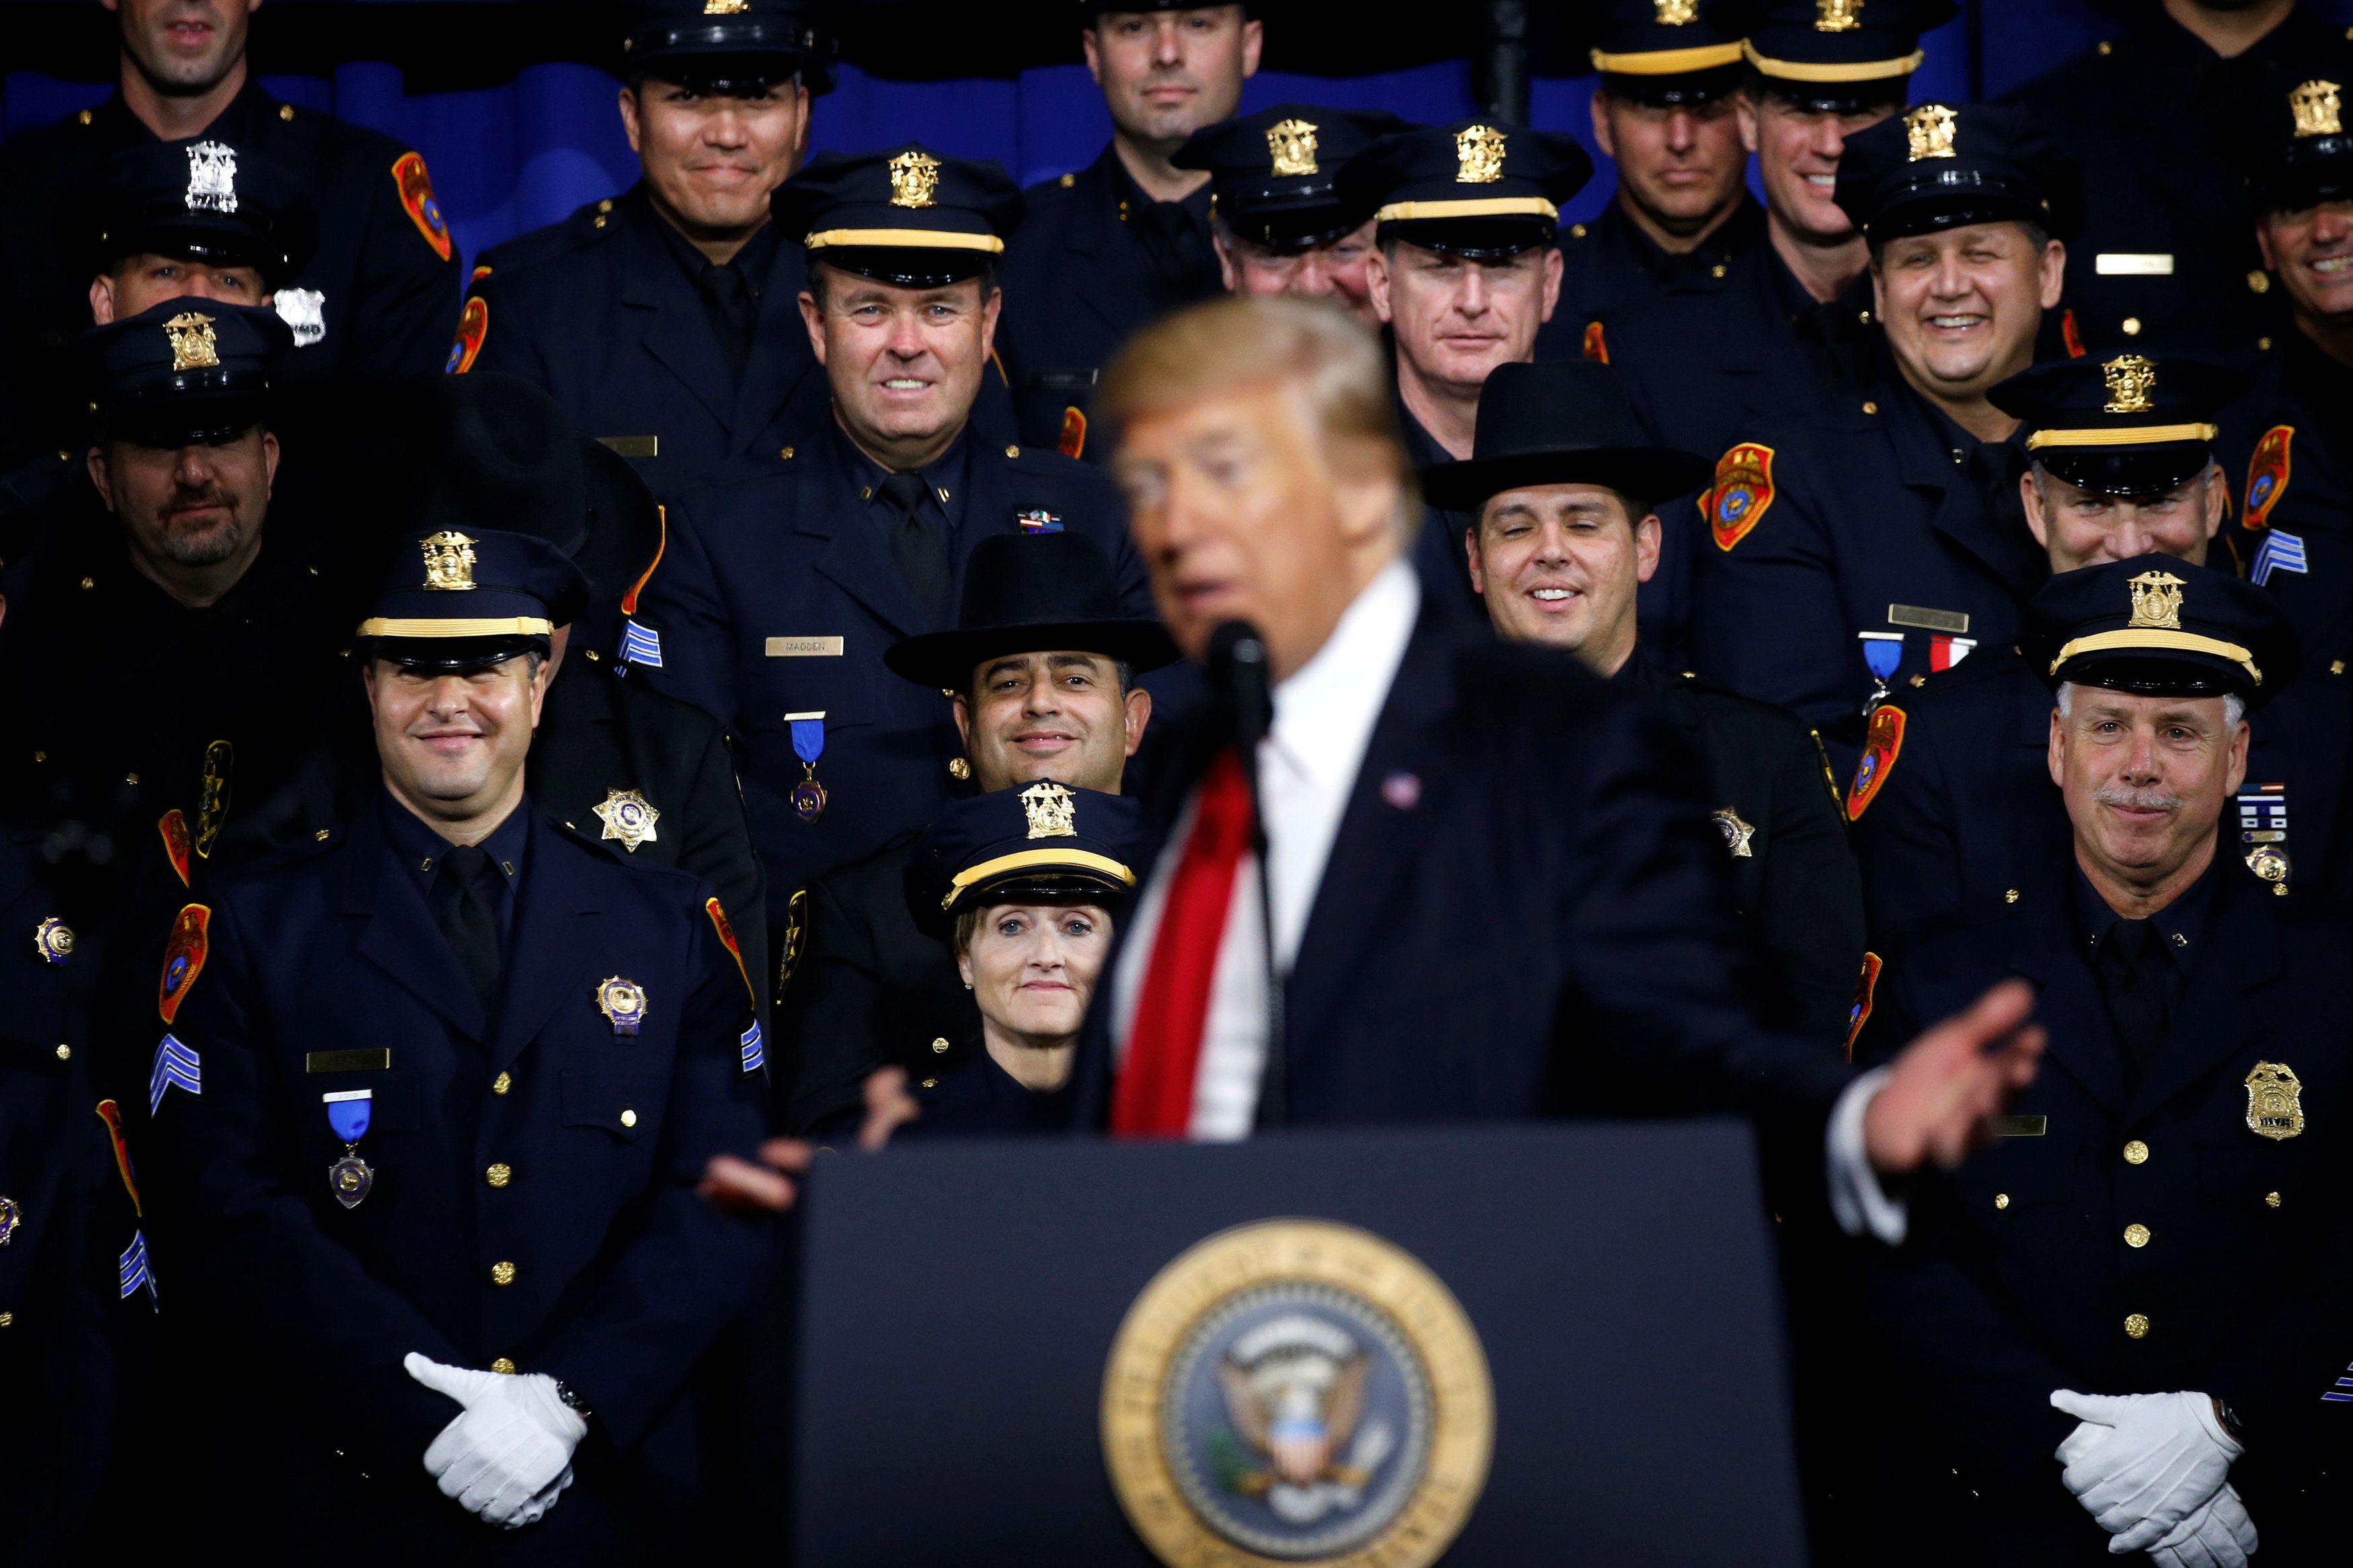 Trump Praises Law Enforcement in Fighting MS-13 Gang